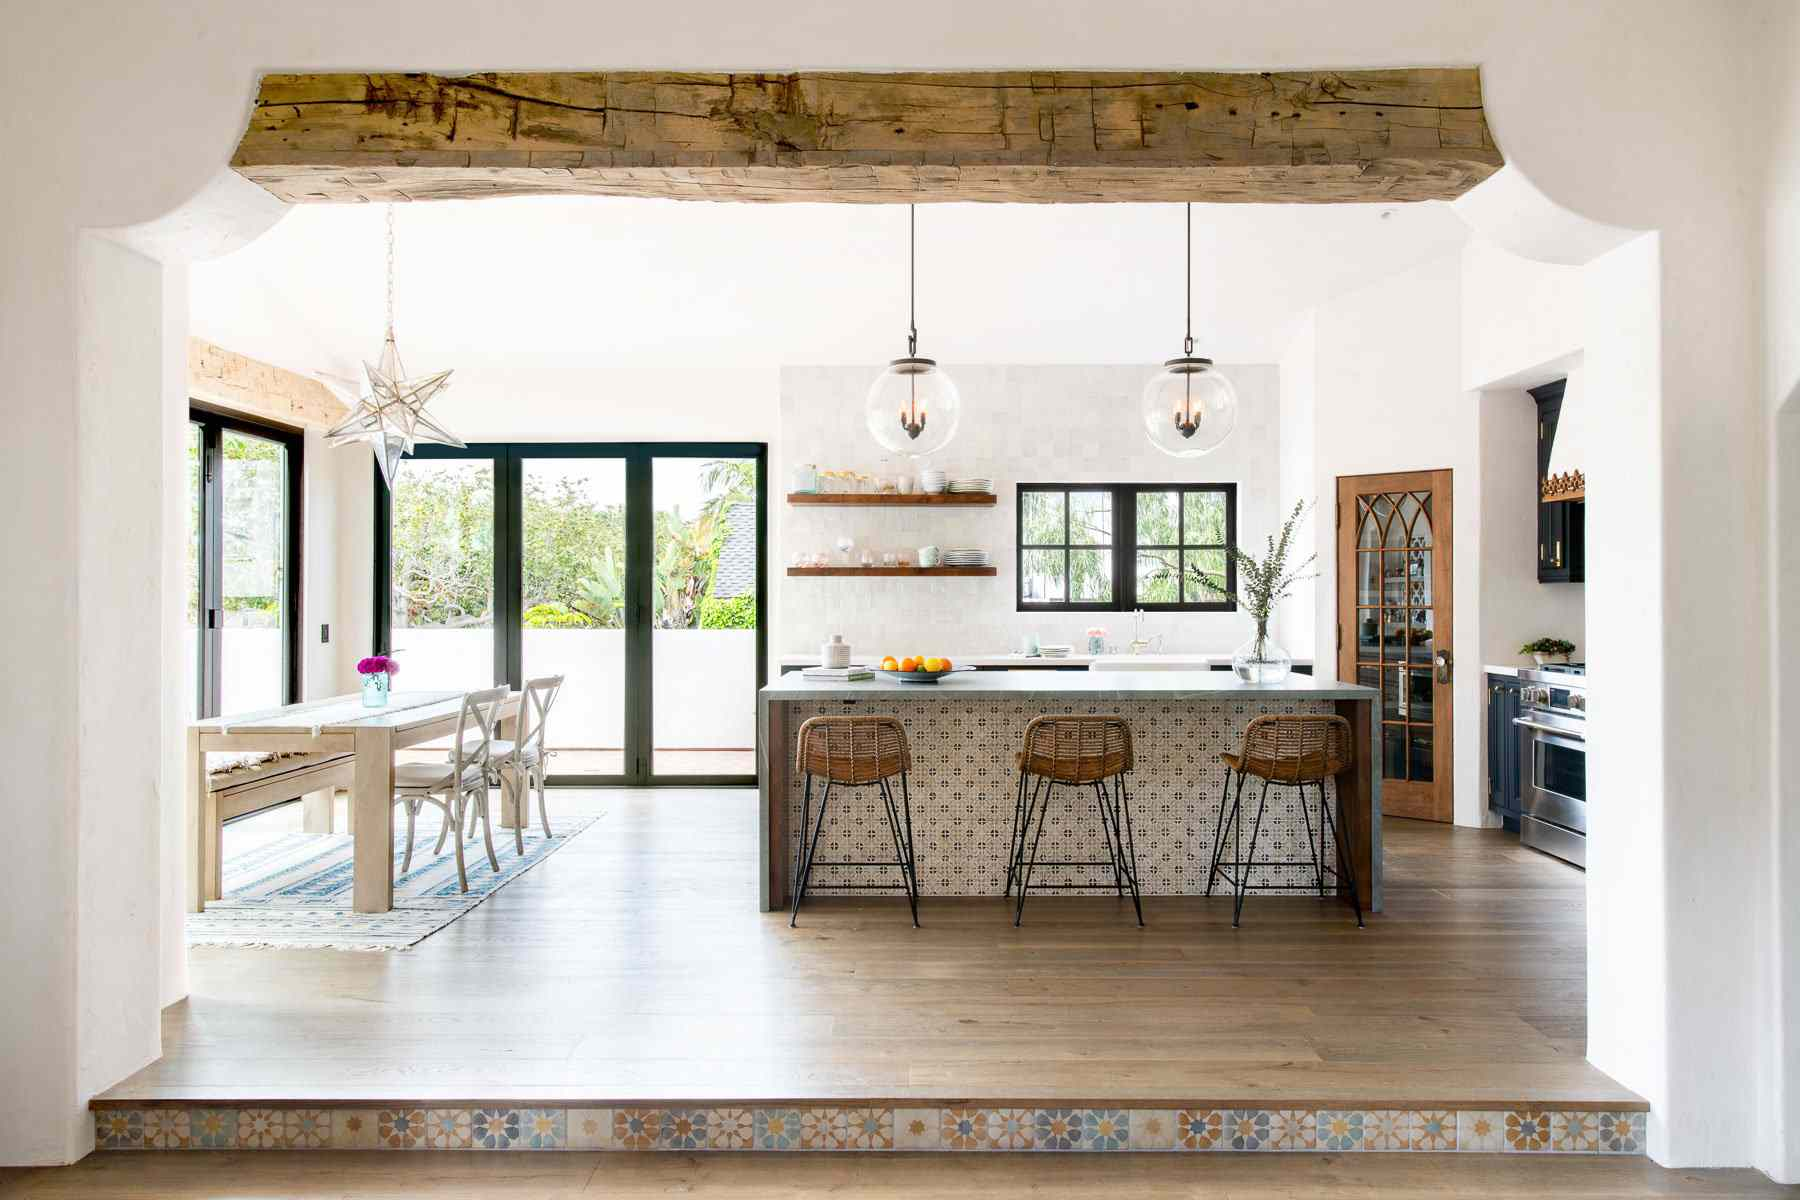 An open-concept kitchen with wood and tile accents